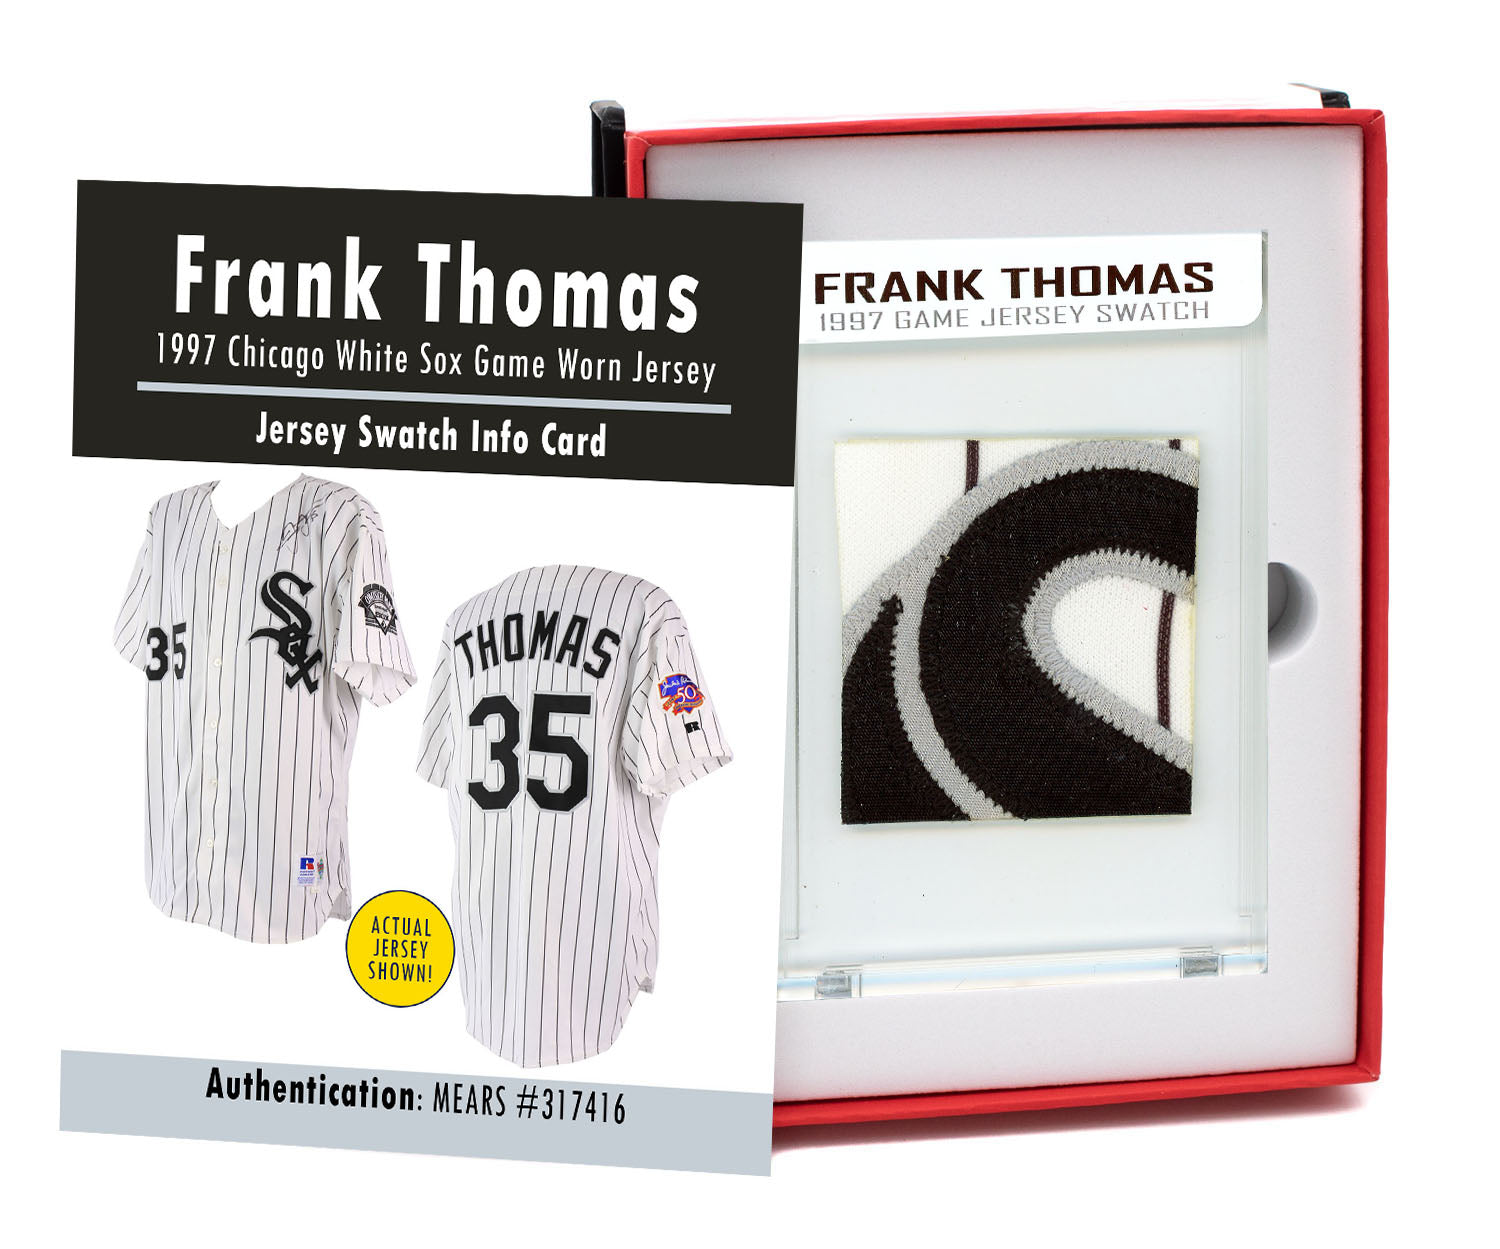 FRANK THOMAS 1997 WHITE SOX GAME WORN JERSEY MYSTERY SWATCH BOX!